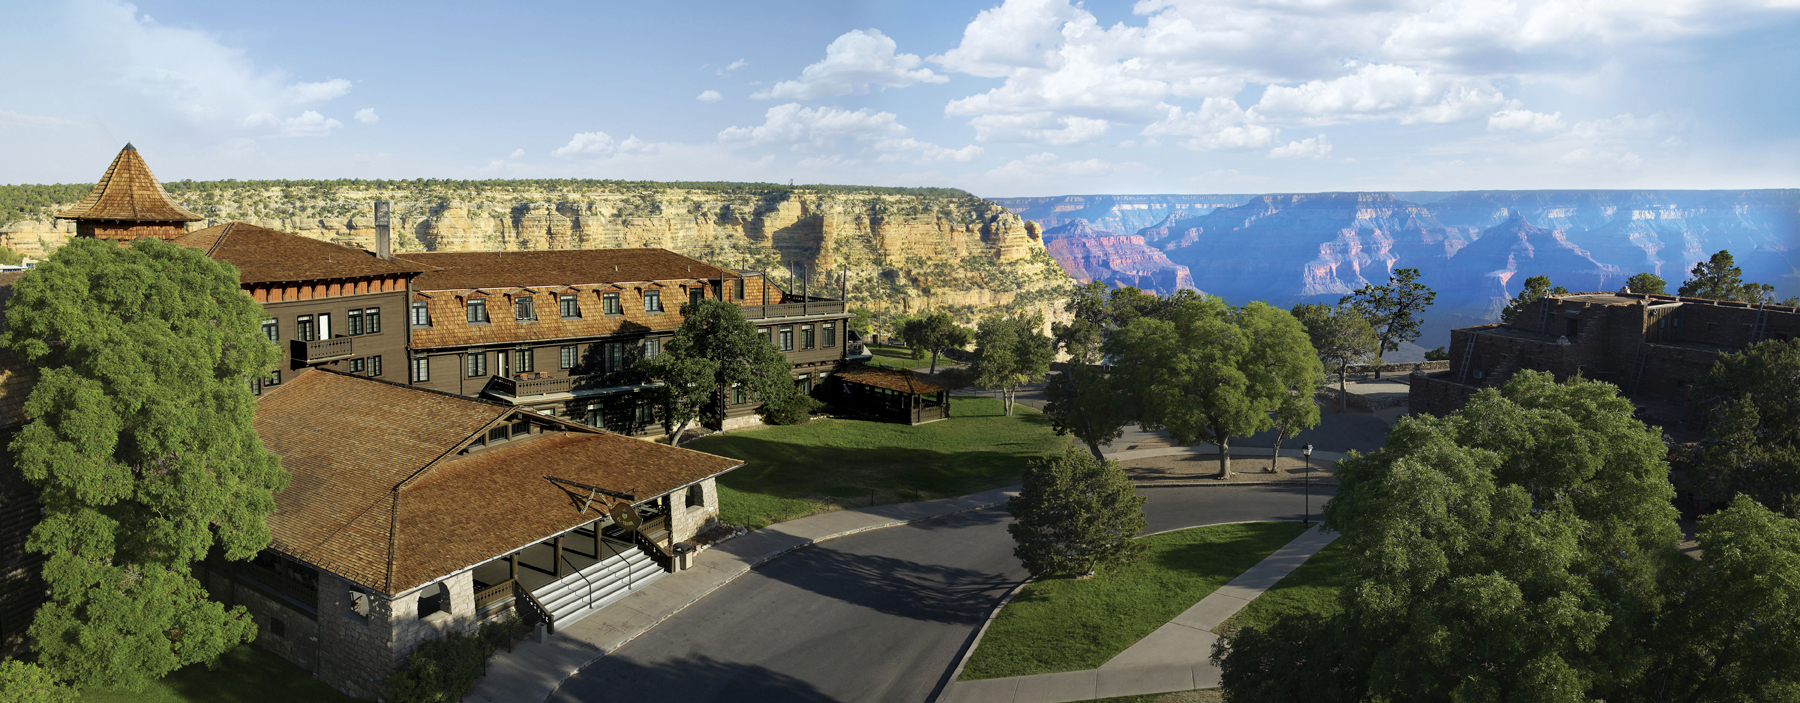 grand canyon national park lodges you 39 re not just close